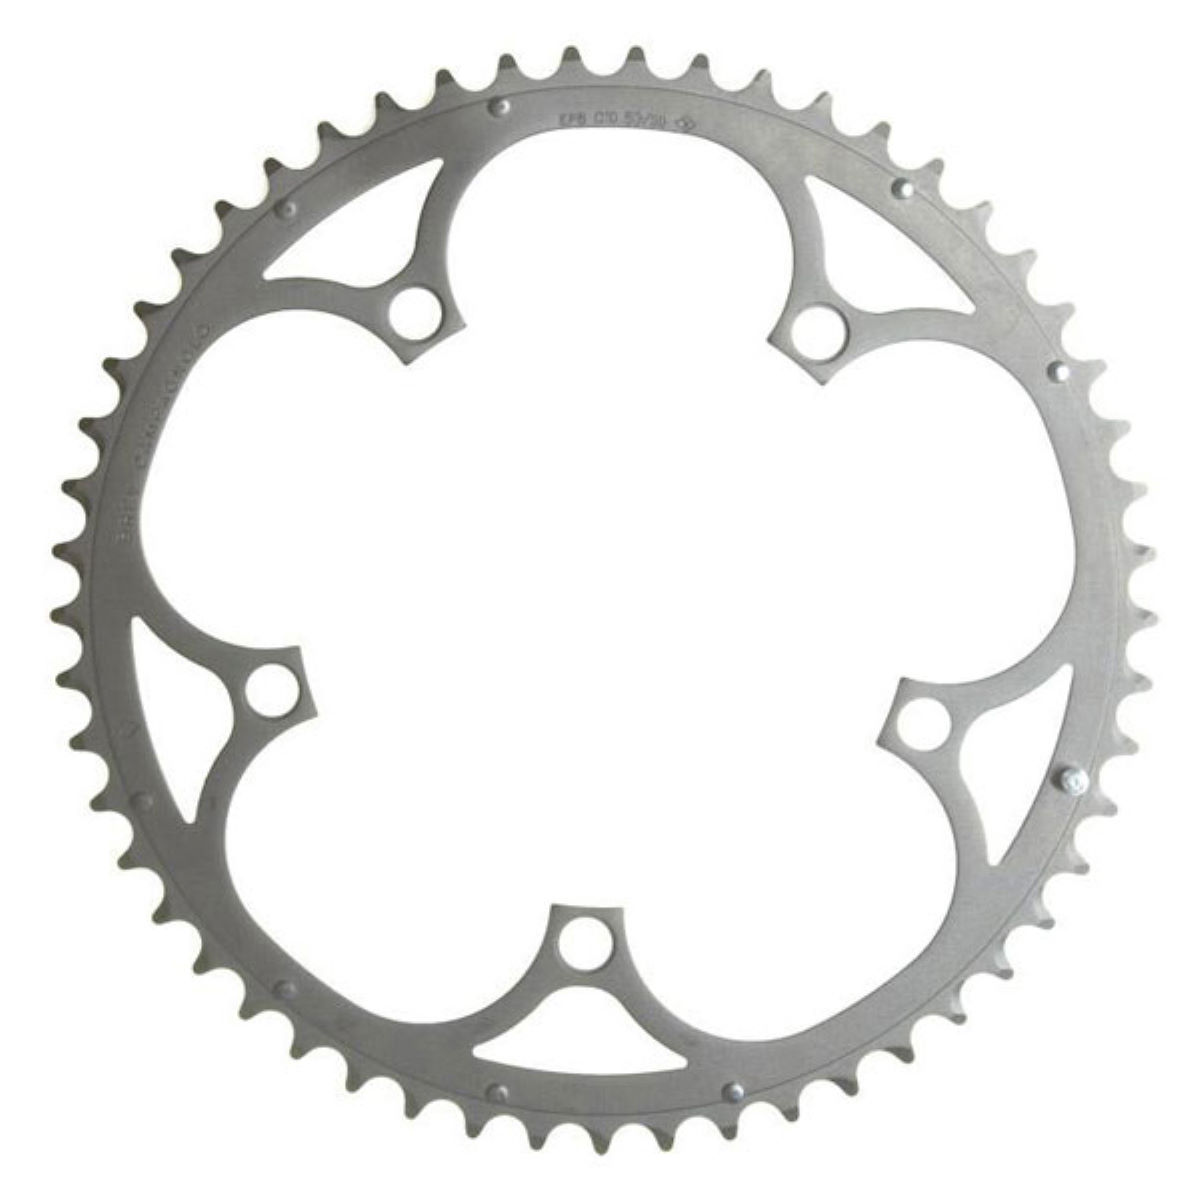 Plateau Campagnolo Athena 53 dents 11 vitesses - 53 tooth Plateaux